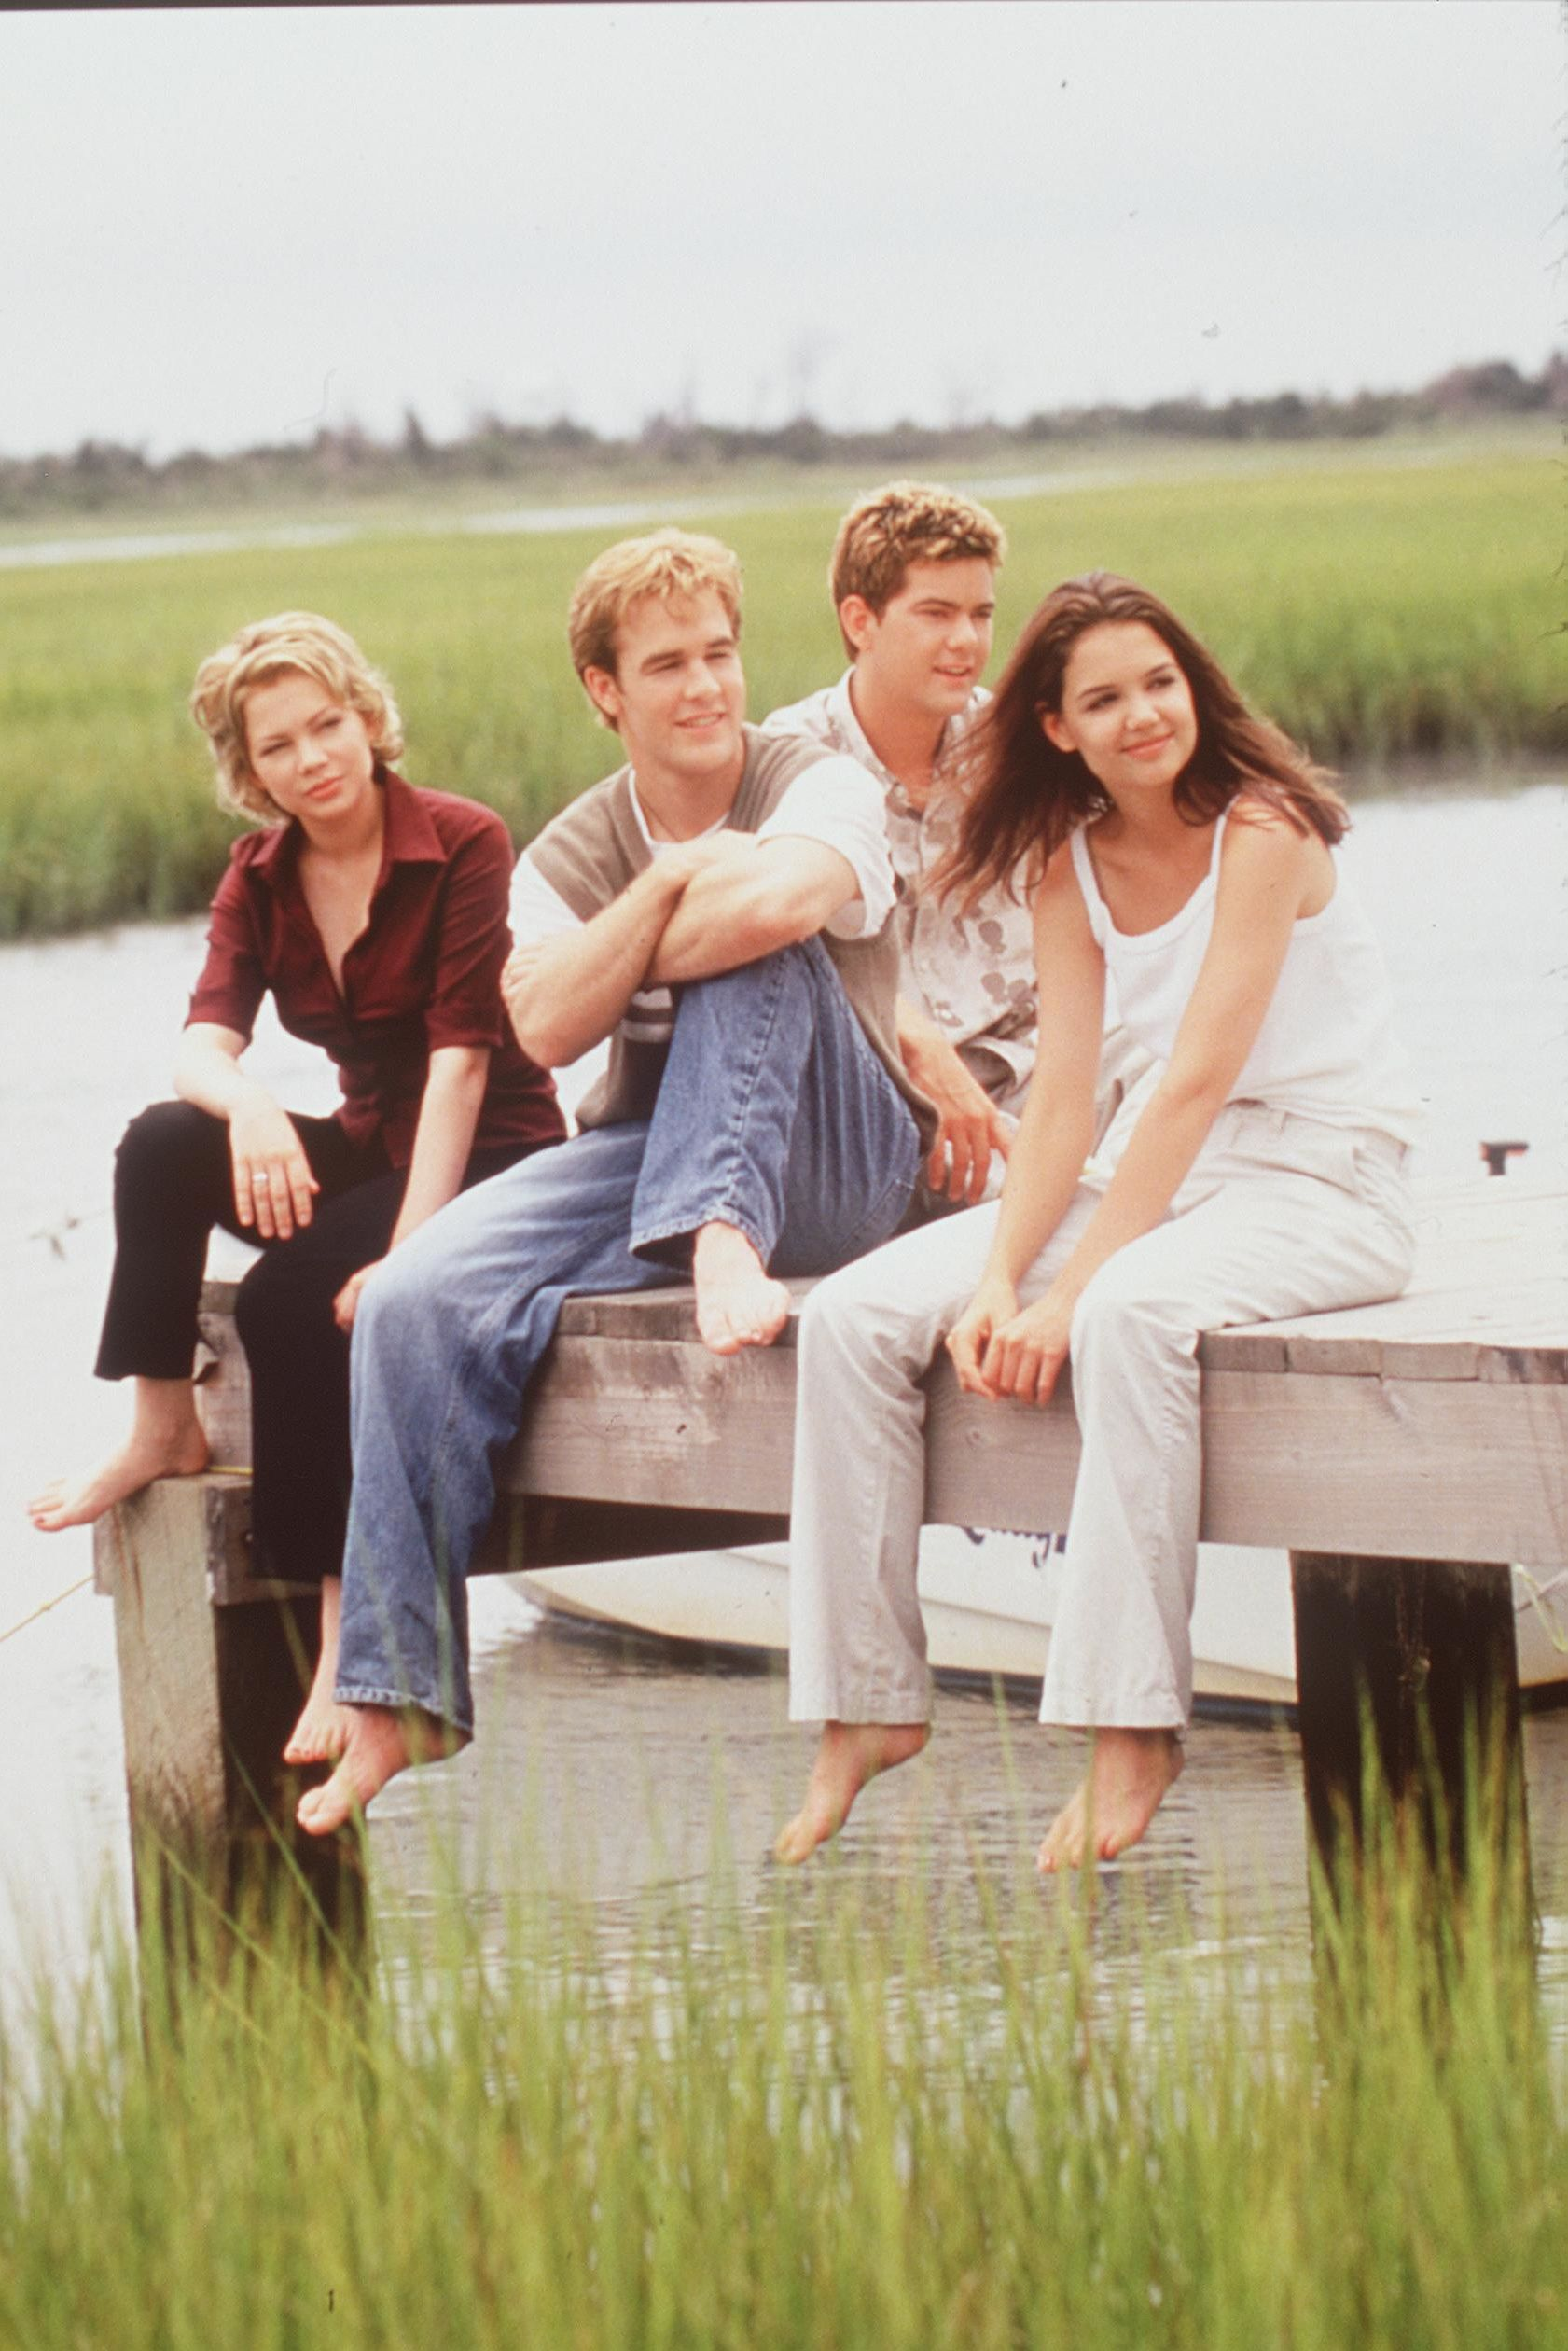 The Dawson's Creek Cast Reunited After 20 Years and They're Still Total Heartthrobs